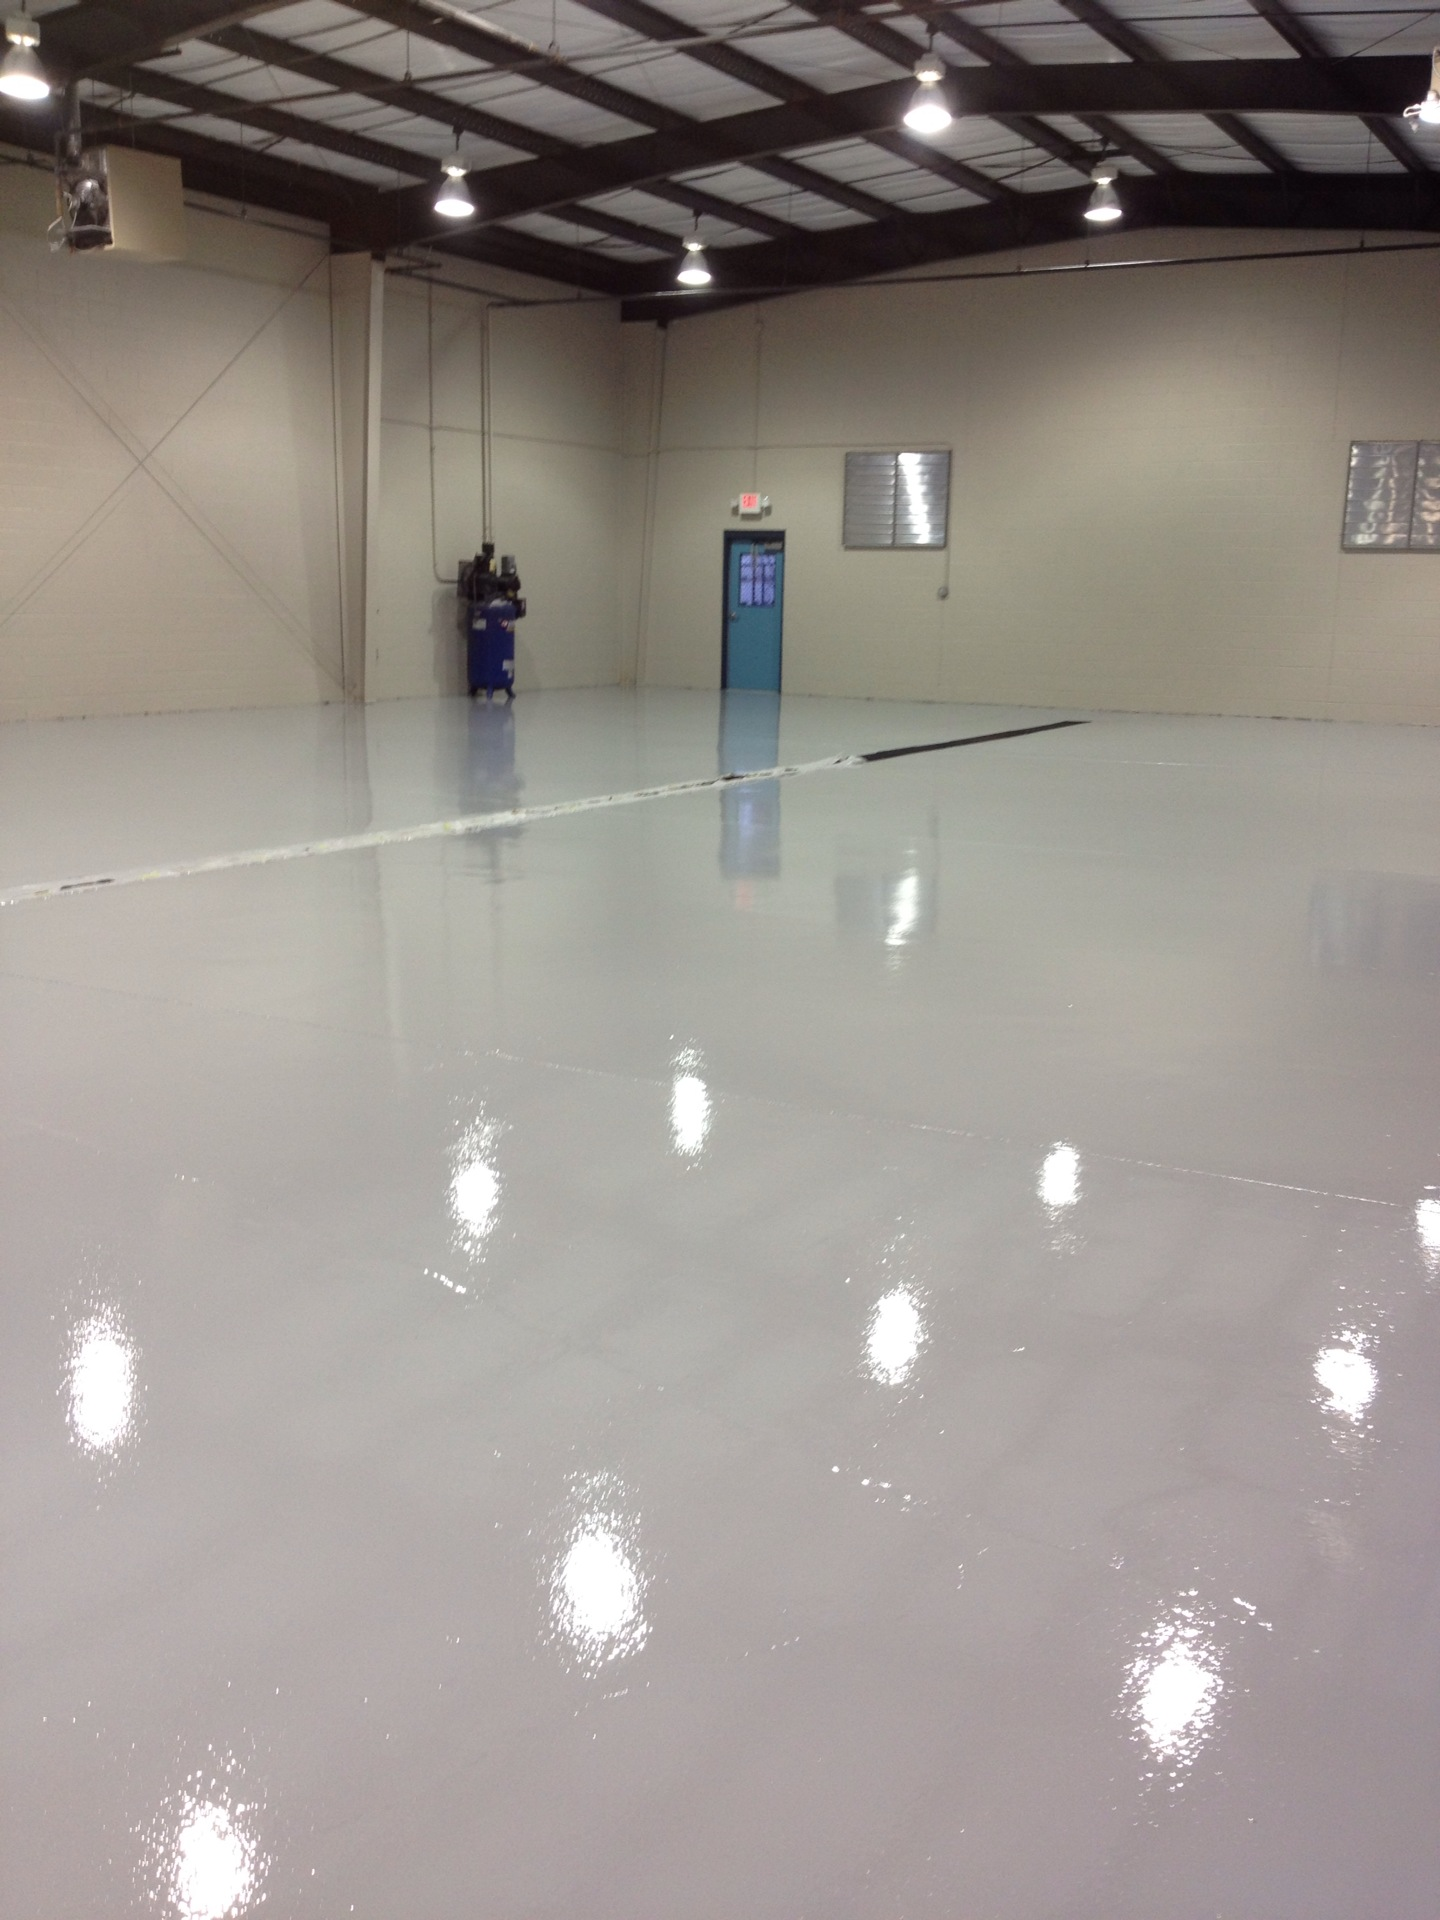 solutions floors imperfections img treatment applying by garage preparation epoxy your of crs all minor enhance the coating hide and from coatings flooring right protective concrete beauty